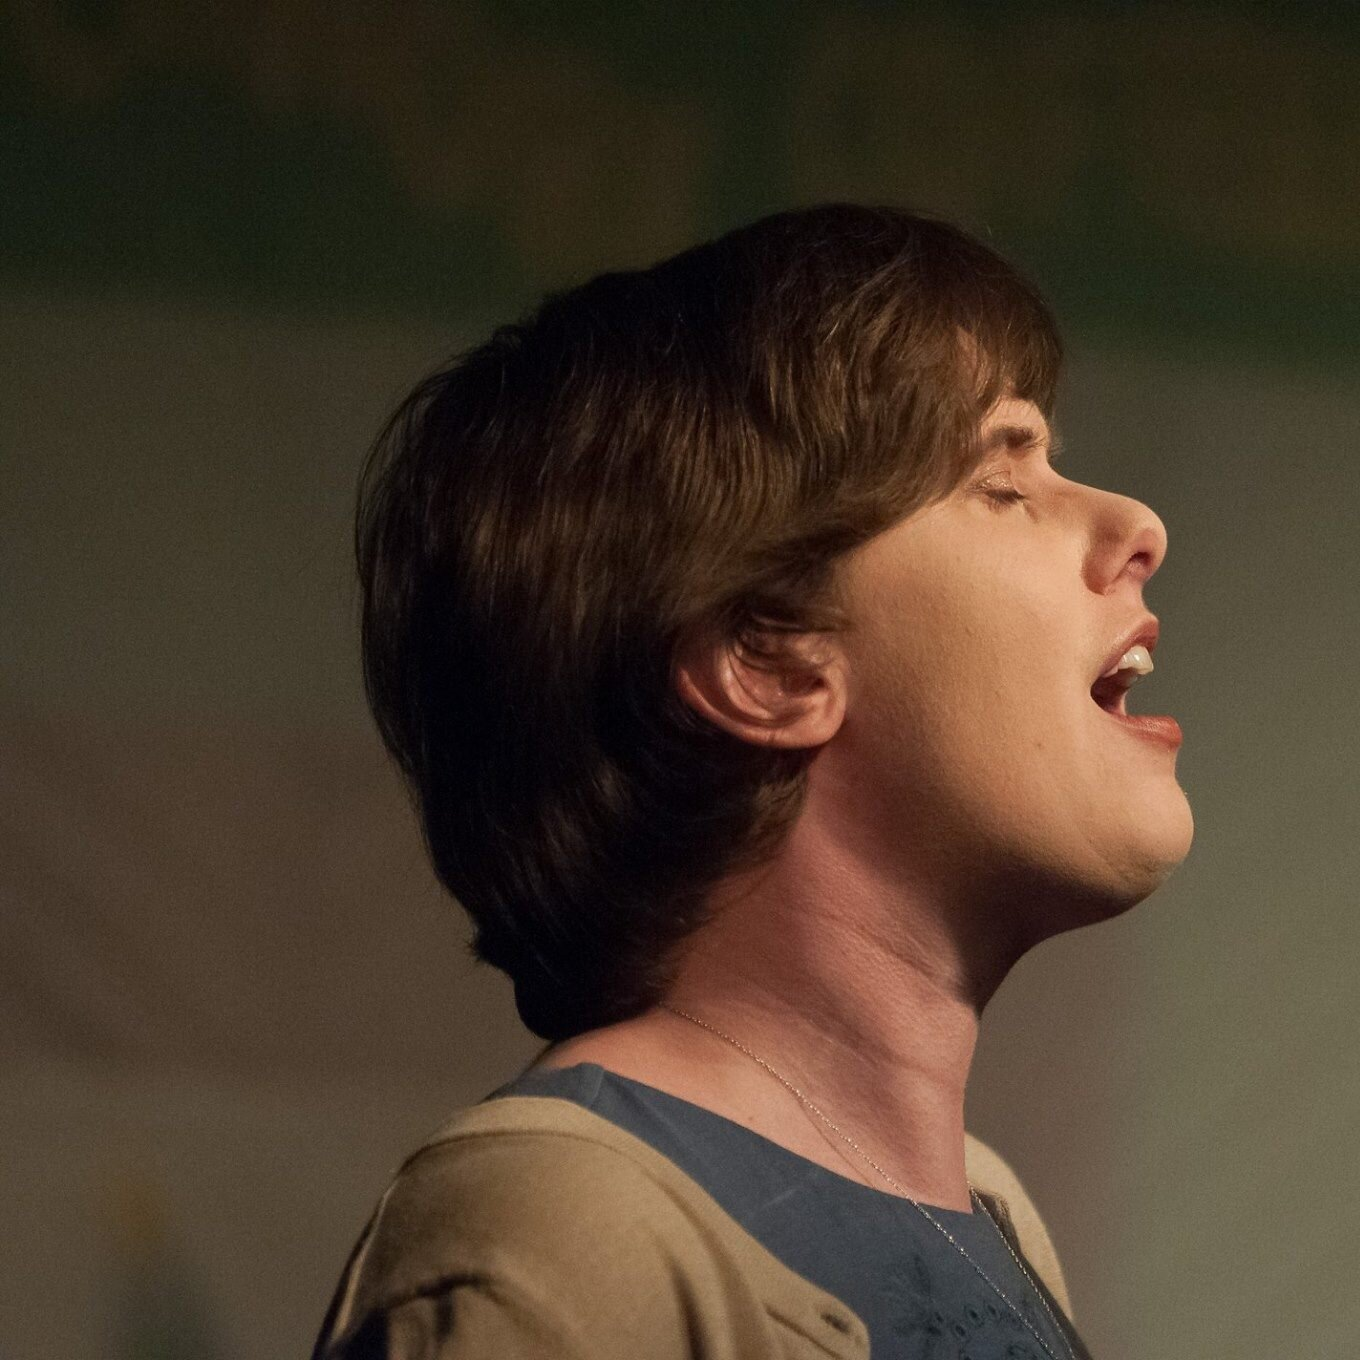 Image Description: Emily Rose Cole with short hair, eyes closed, singing.